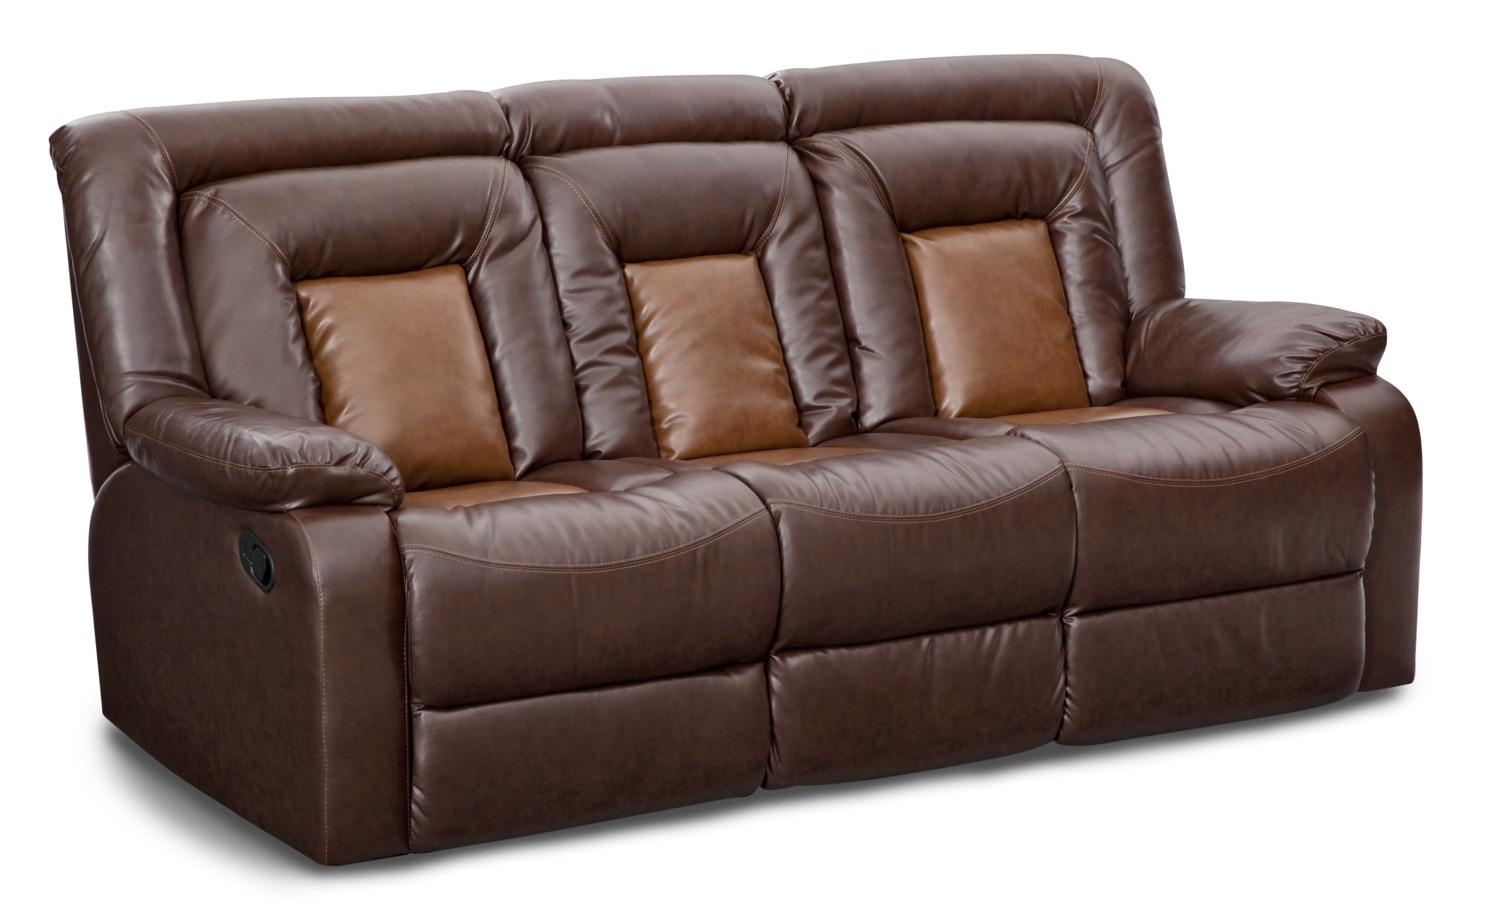 Sofas & Couches | Living Room Seating | Value City Furniture Inside Brown Sofa Chairs (View 18 of 20)